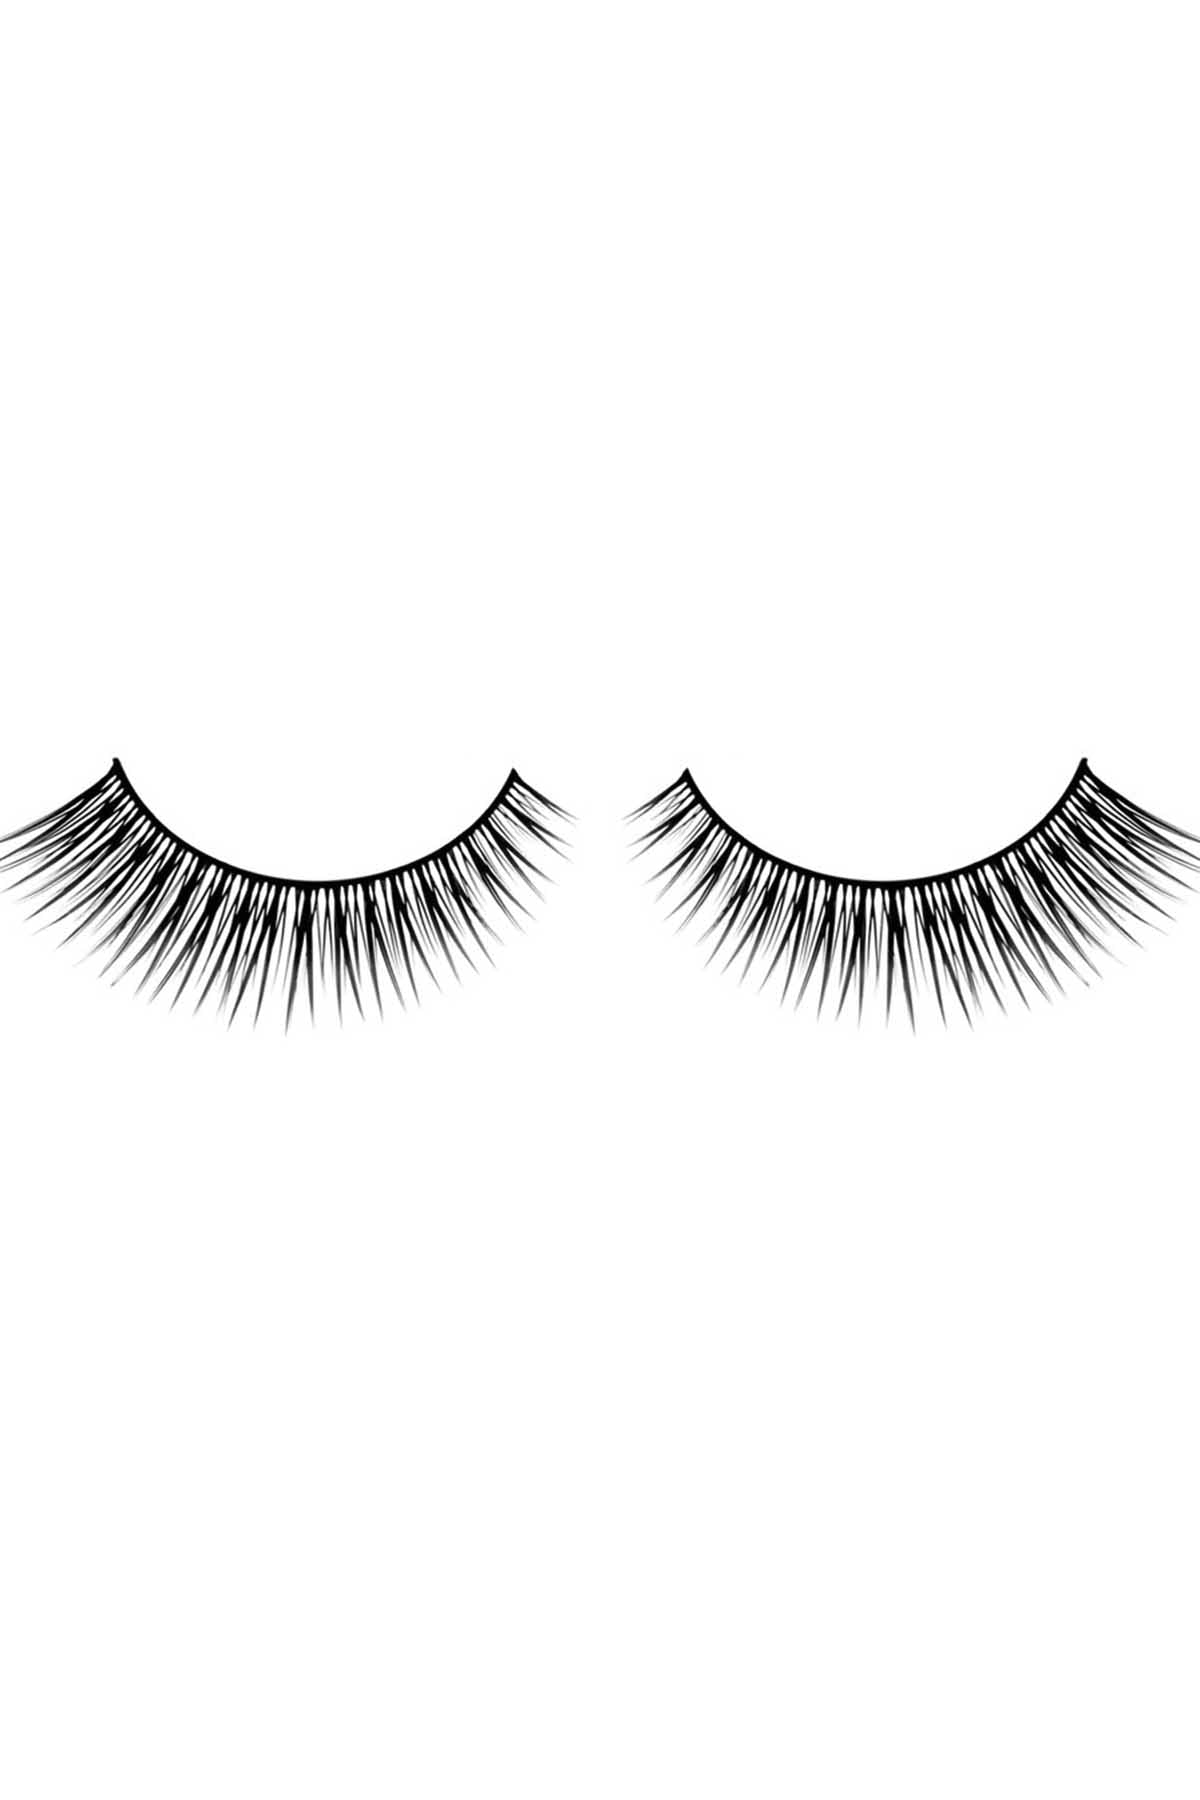 Baci Black High-Fullness Progressive Length Premium Lashes